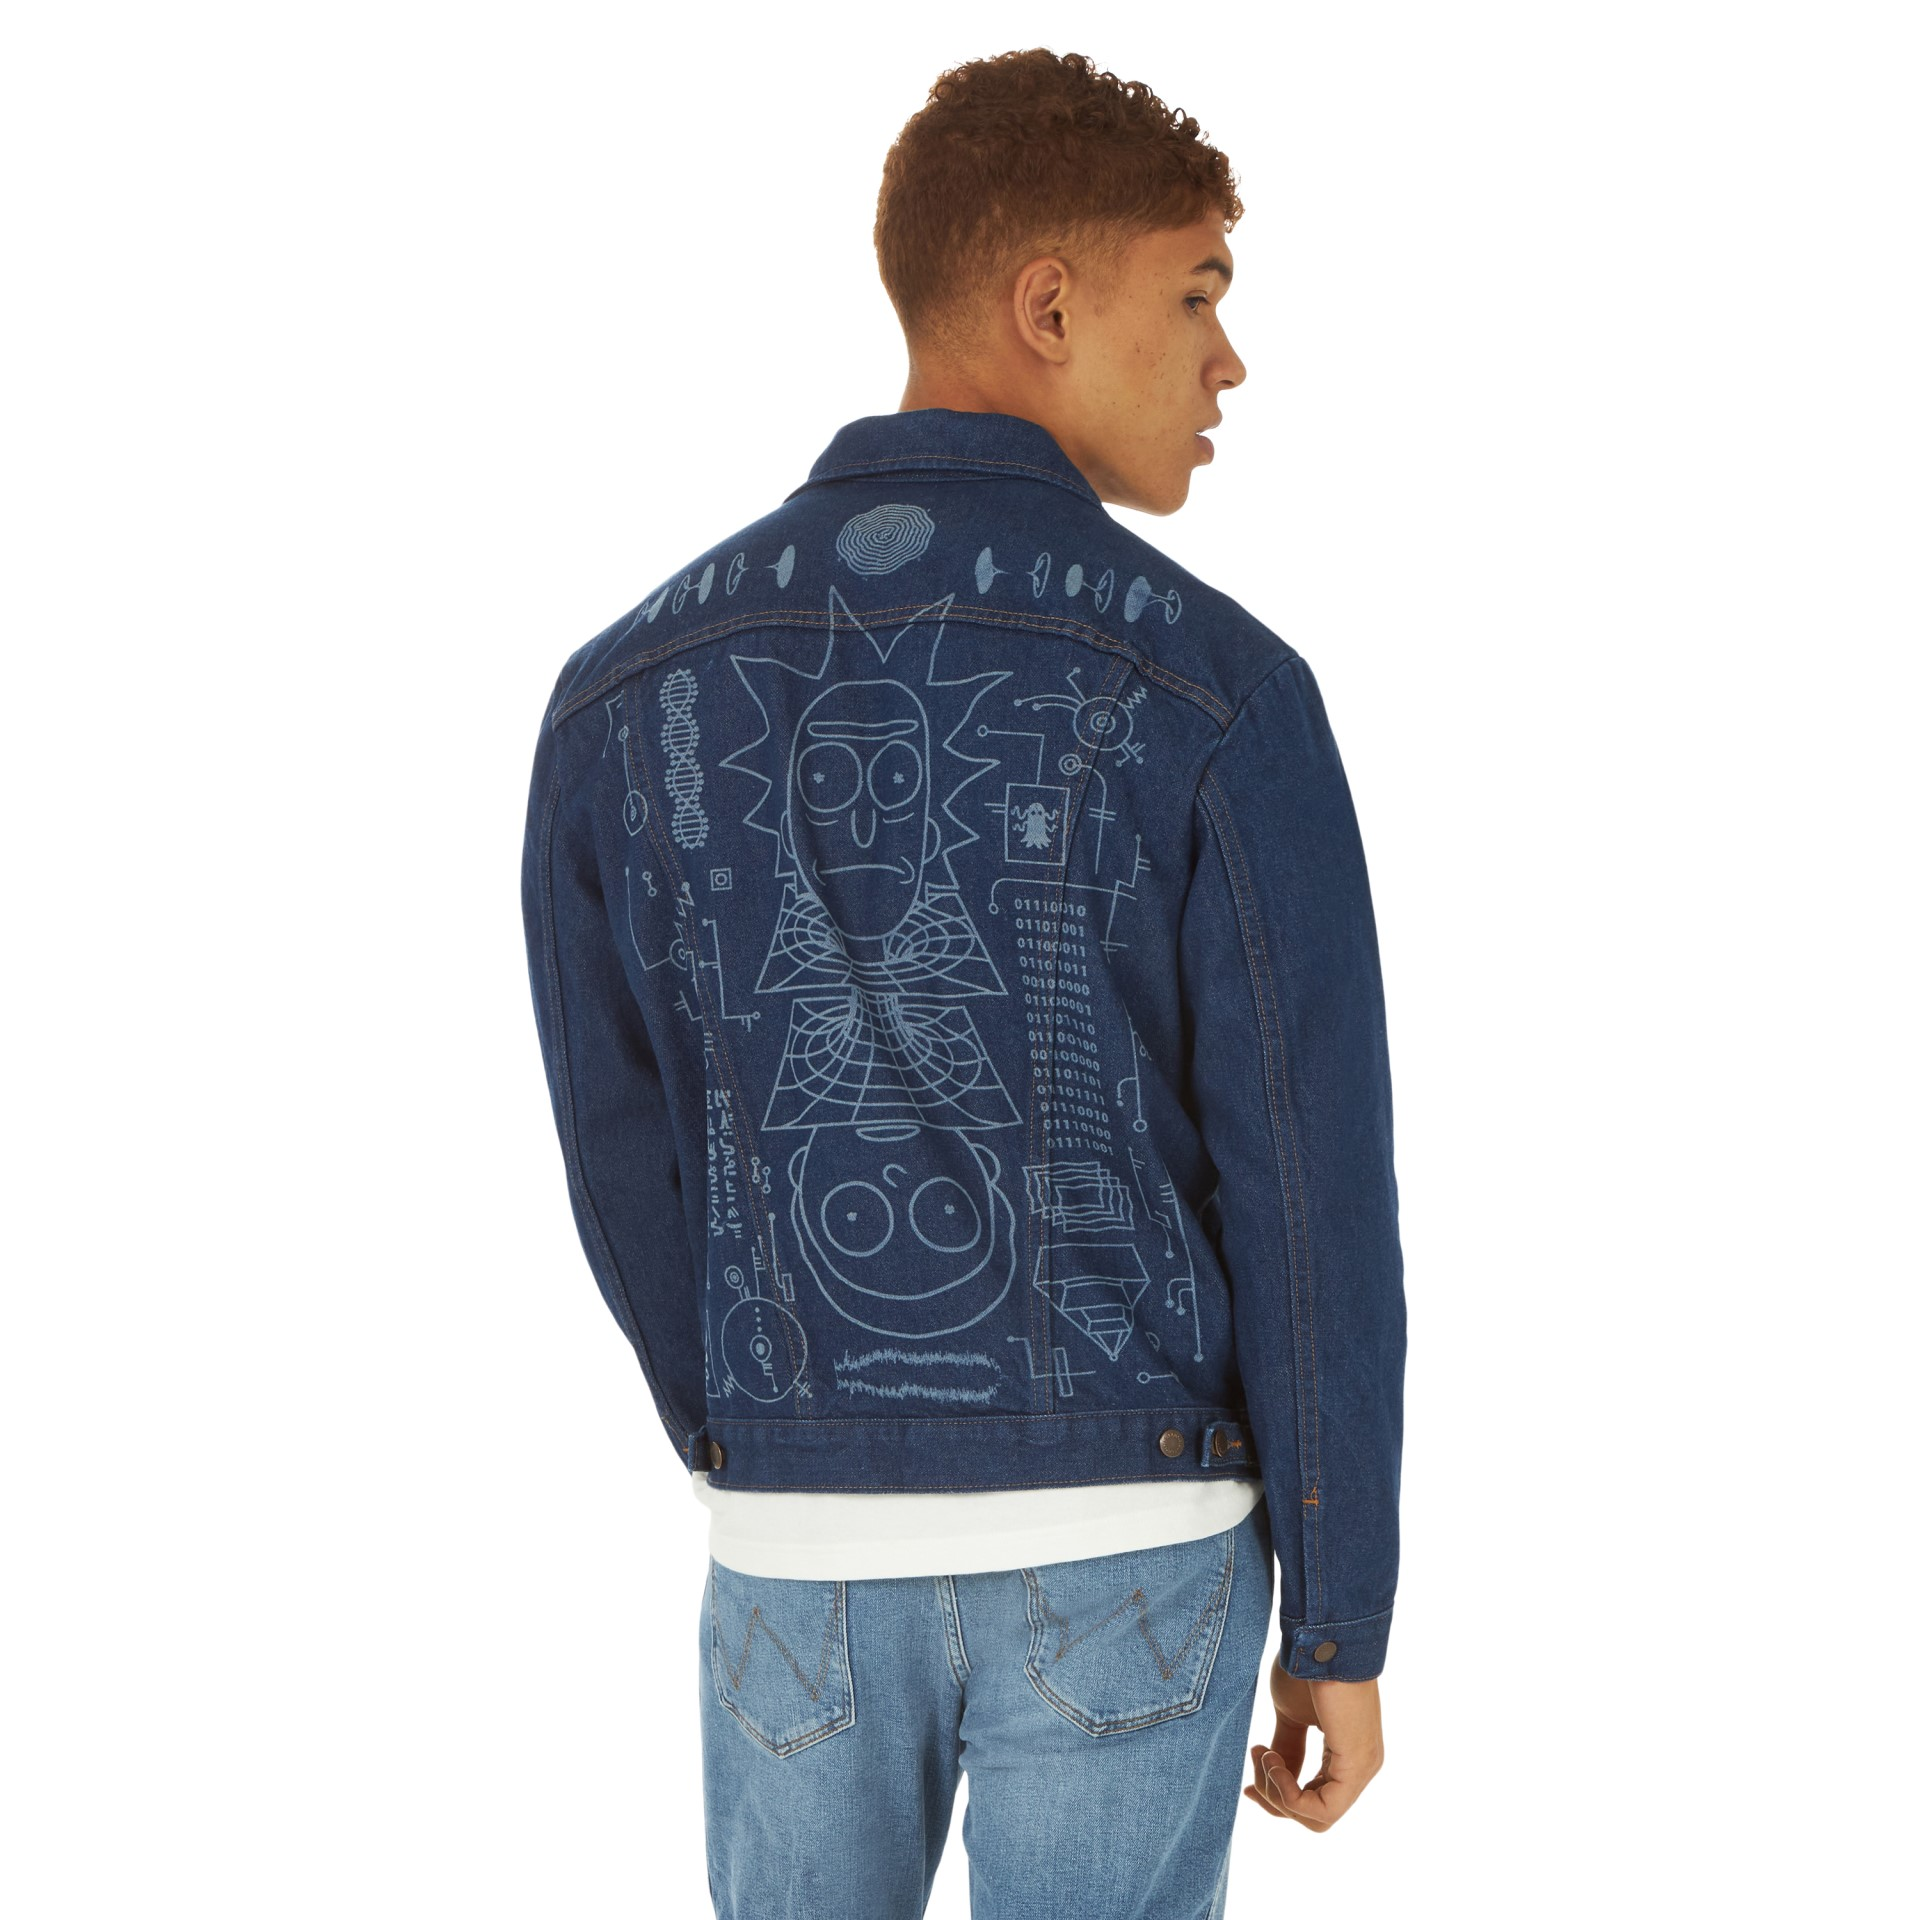 Wrangler drops Rick and Morty jacket and t-shirt inspired by the show's season 4 finale 13